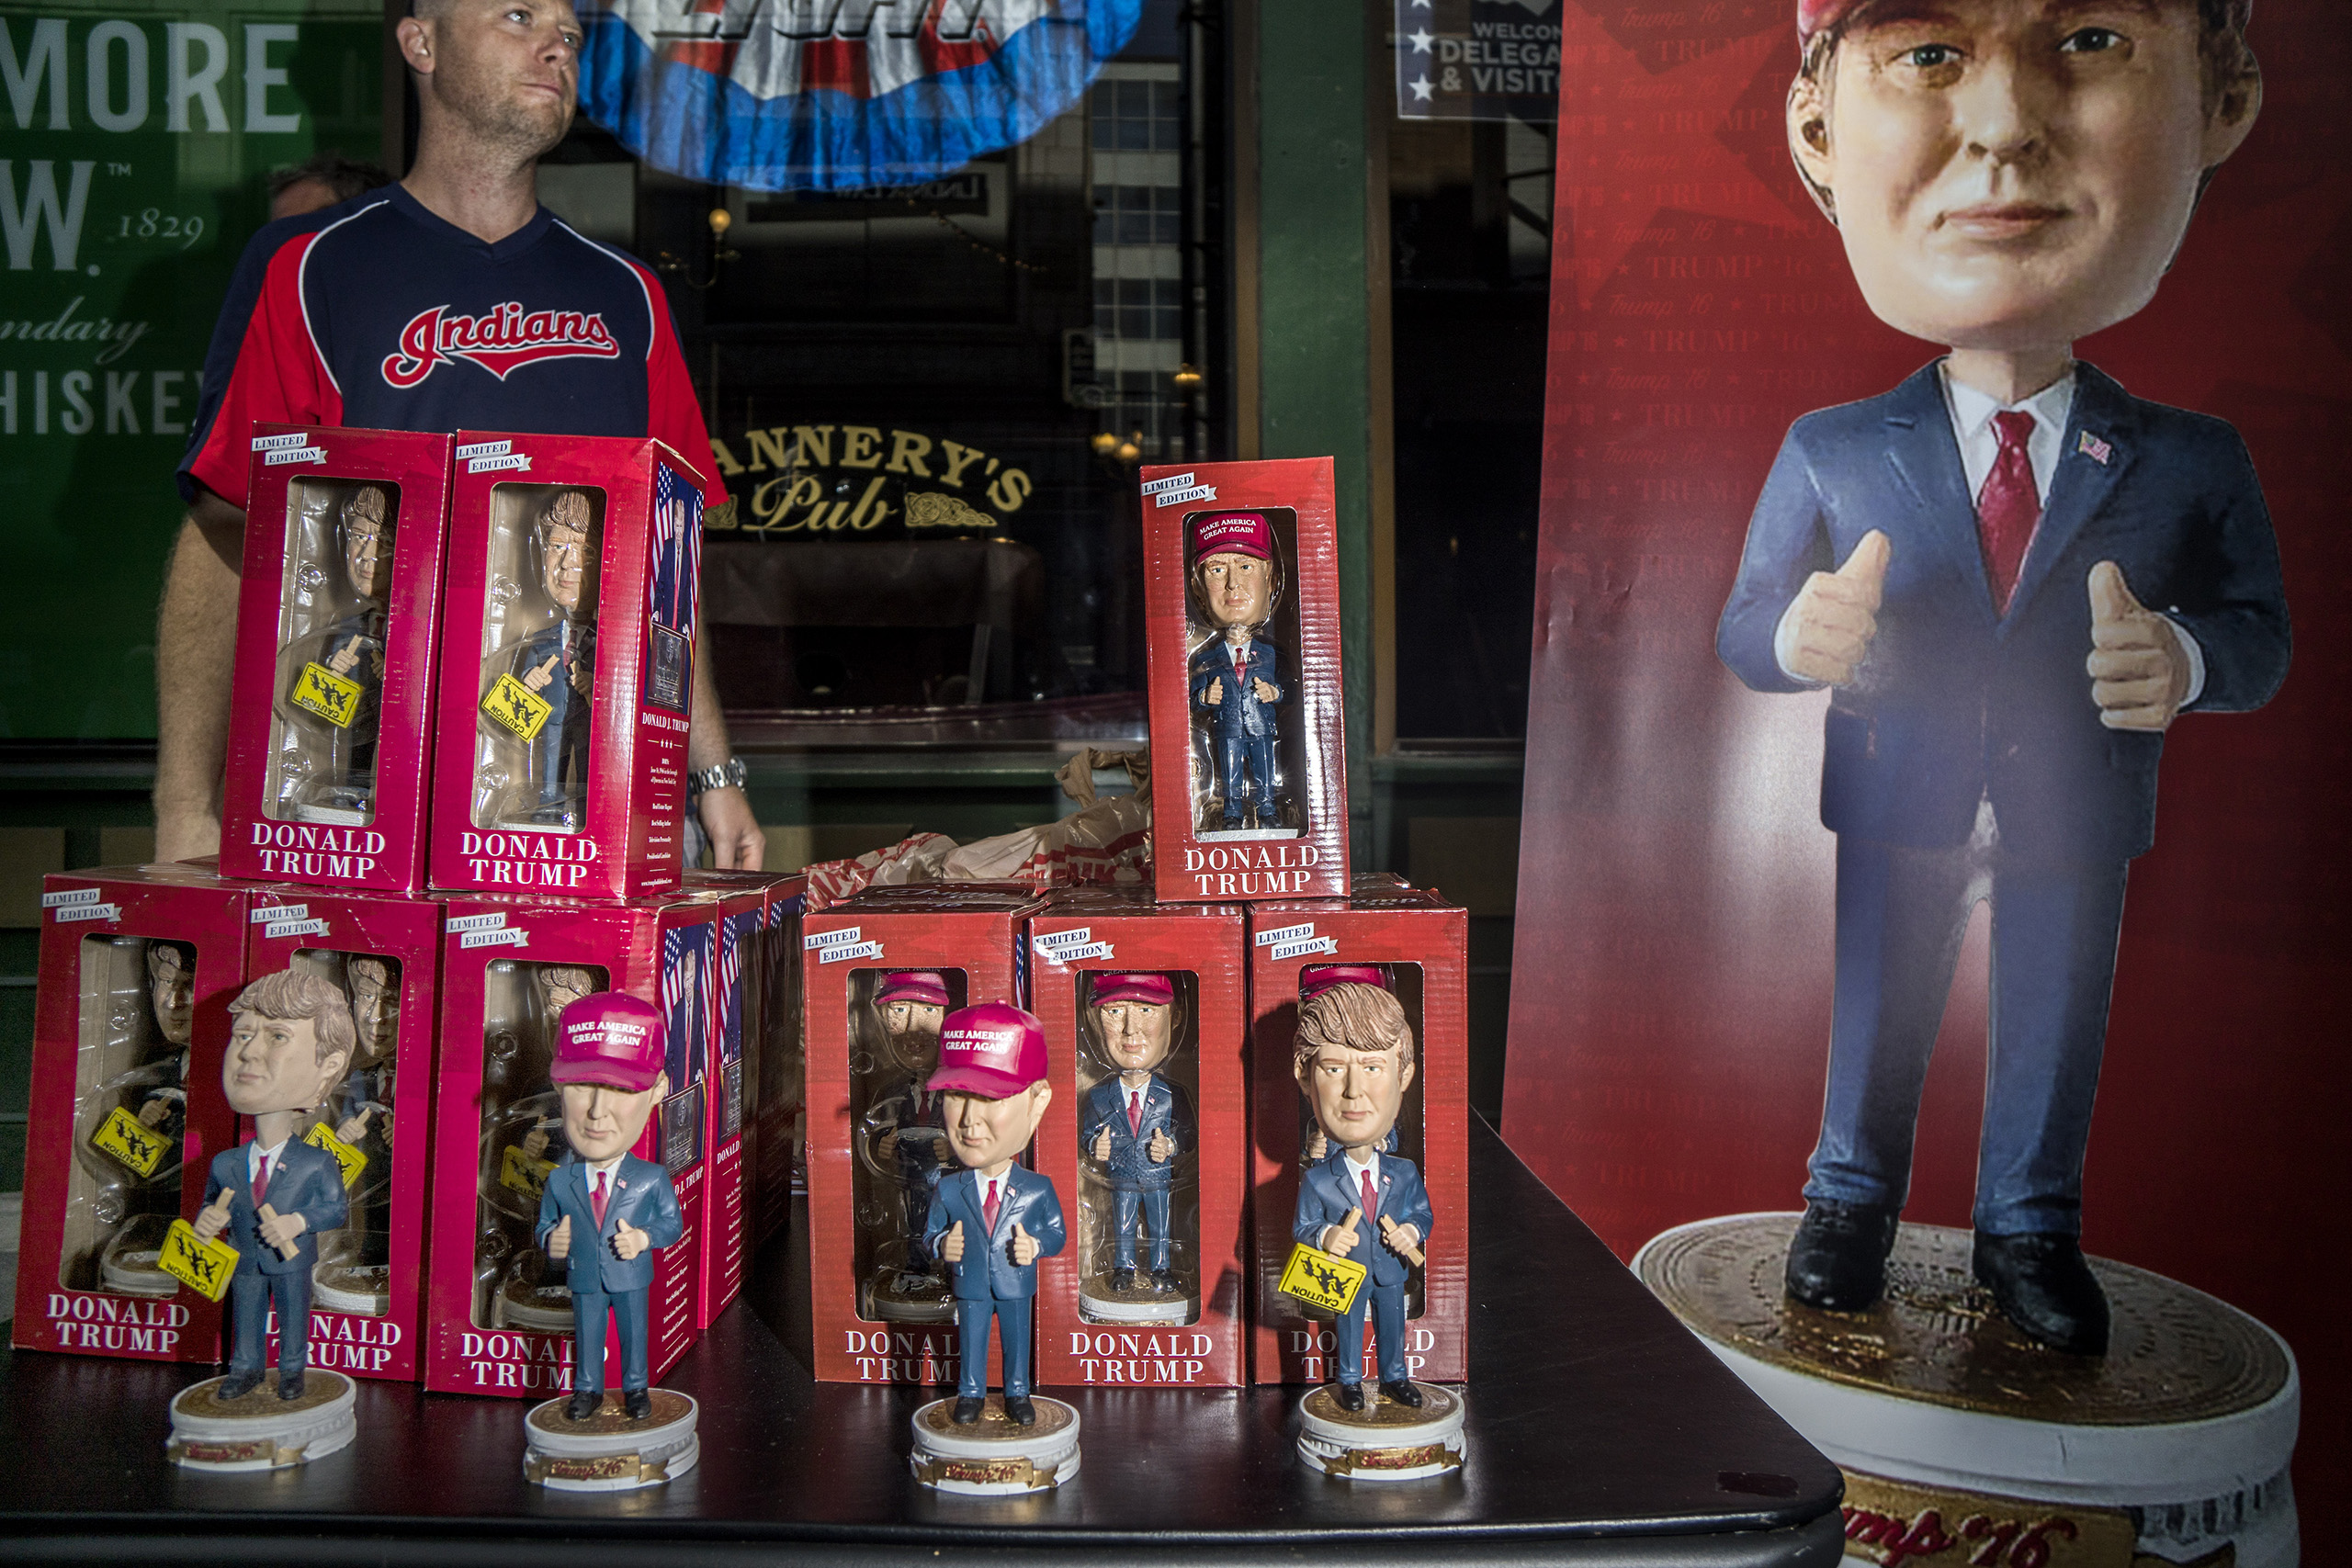 Political Merchandise sold outside the Republican National Convention, July 19, 2016 in Cleveland, Ohio.